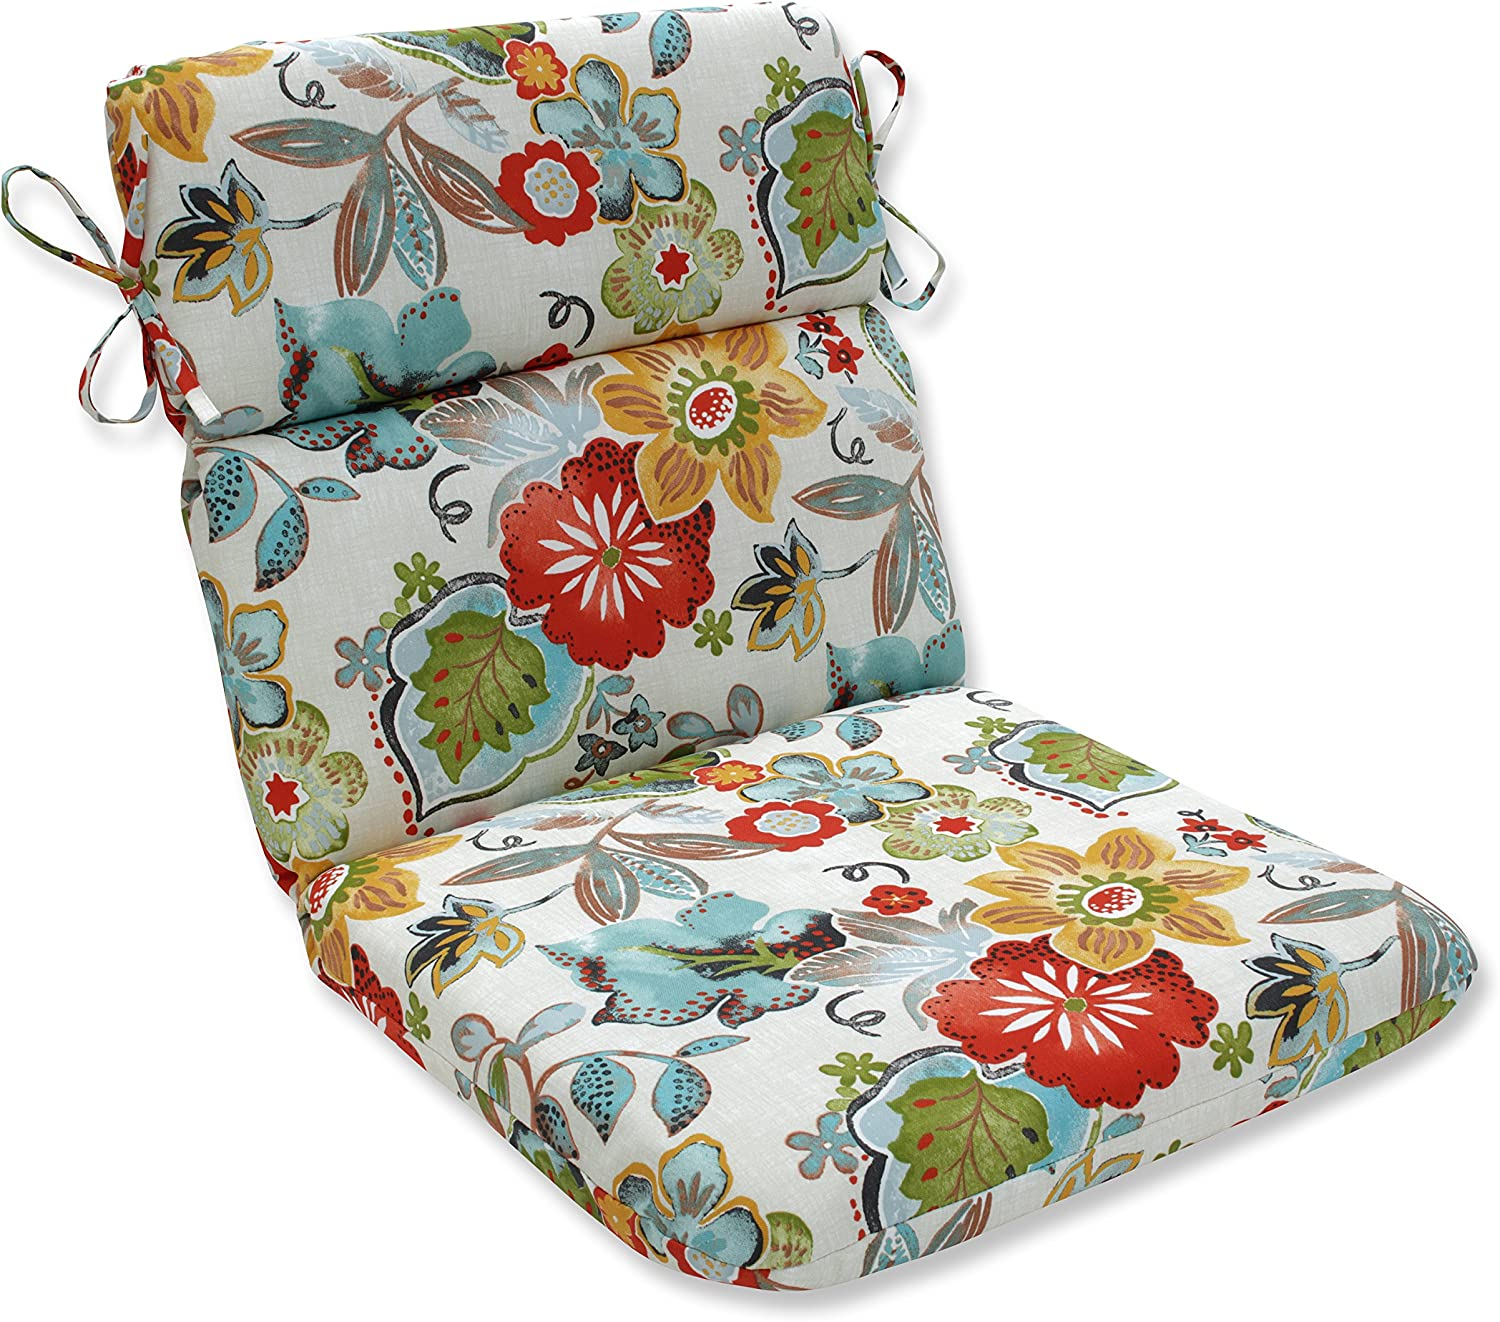 """Pillow Perfect Outdoor/Indoor Alatriste Ivory Round Corner Chair Cushion, 40.5"""" x 21"""", Floral"""